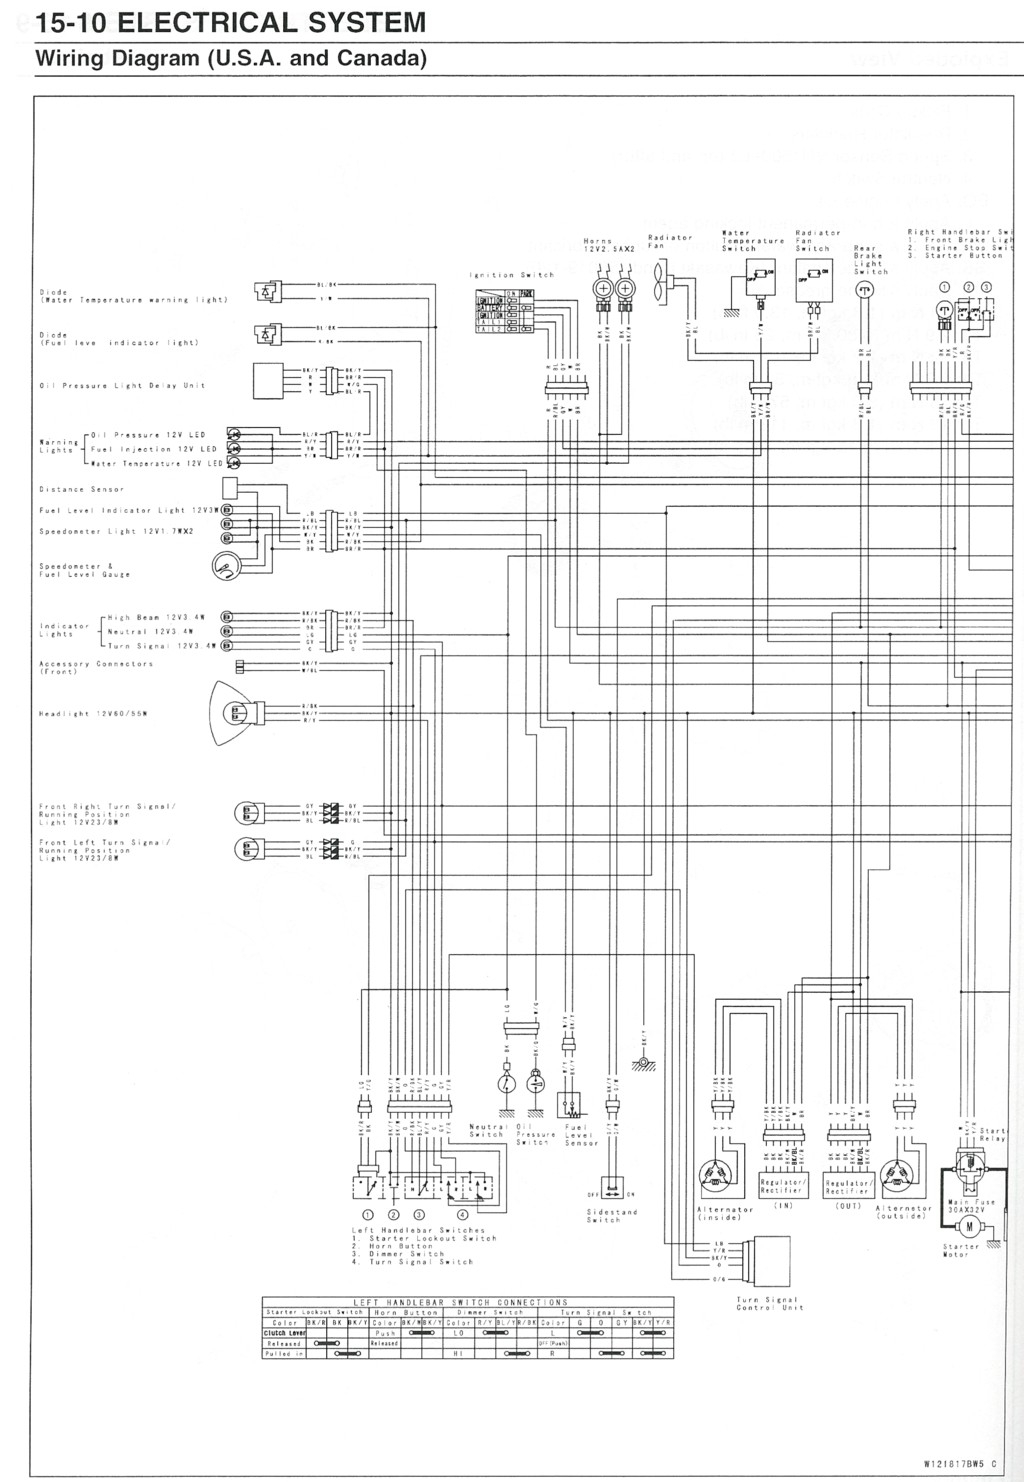 nomad_wiring_diagram_carbed_p1 vulcan wiring diagrams gadget's fixit page  at mifinder.co